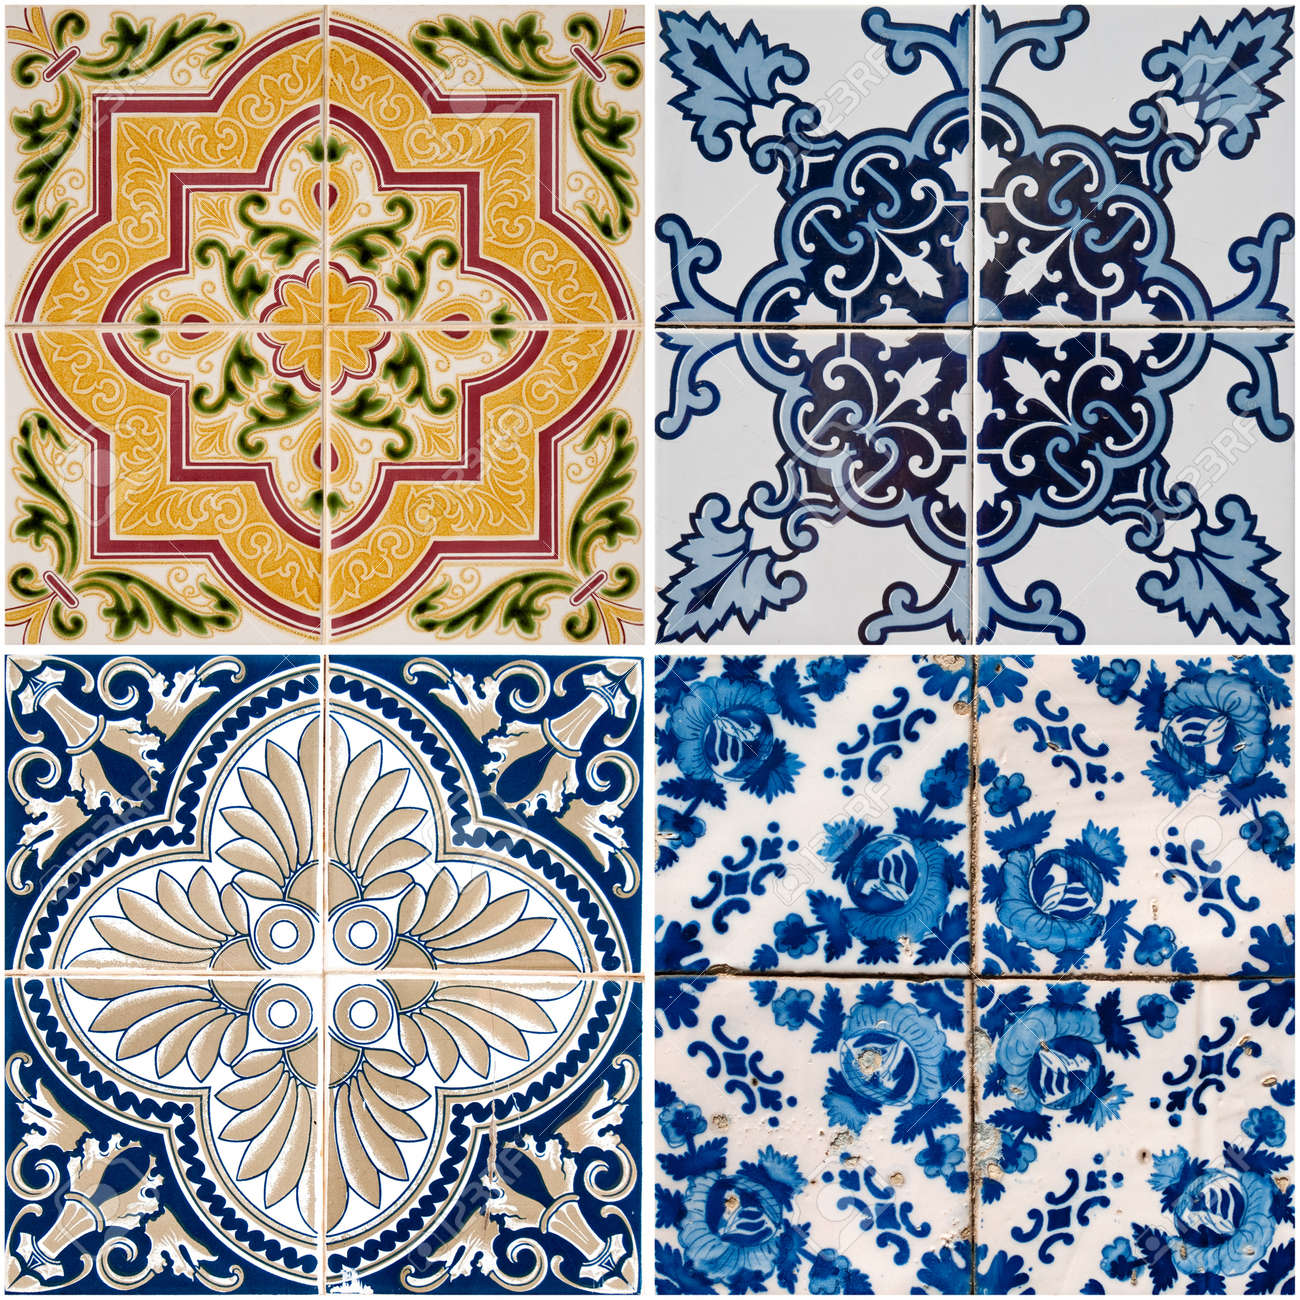 Colorful Vintage Ceramic Tiles Wall Decoration Stock Photo